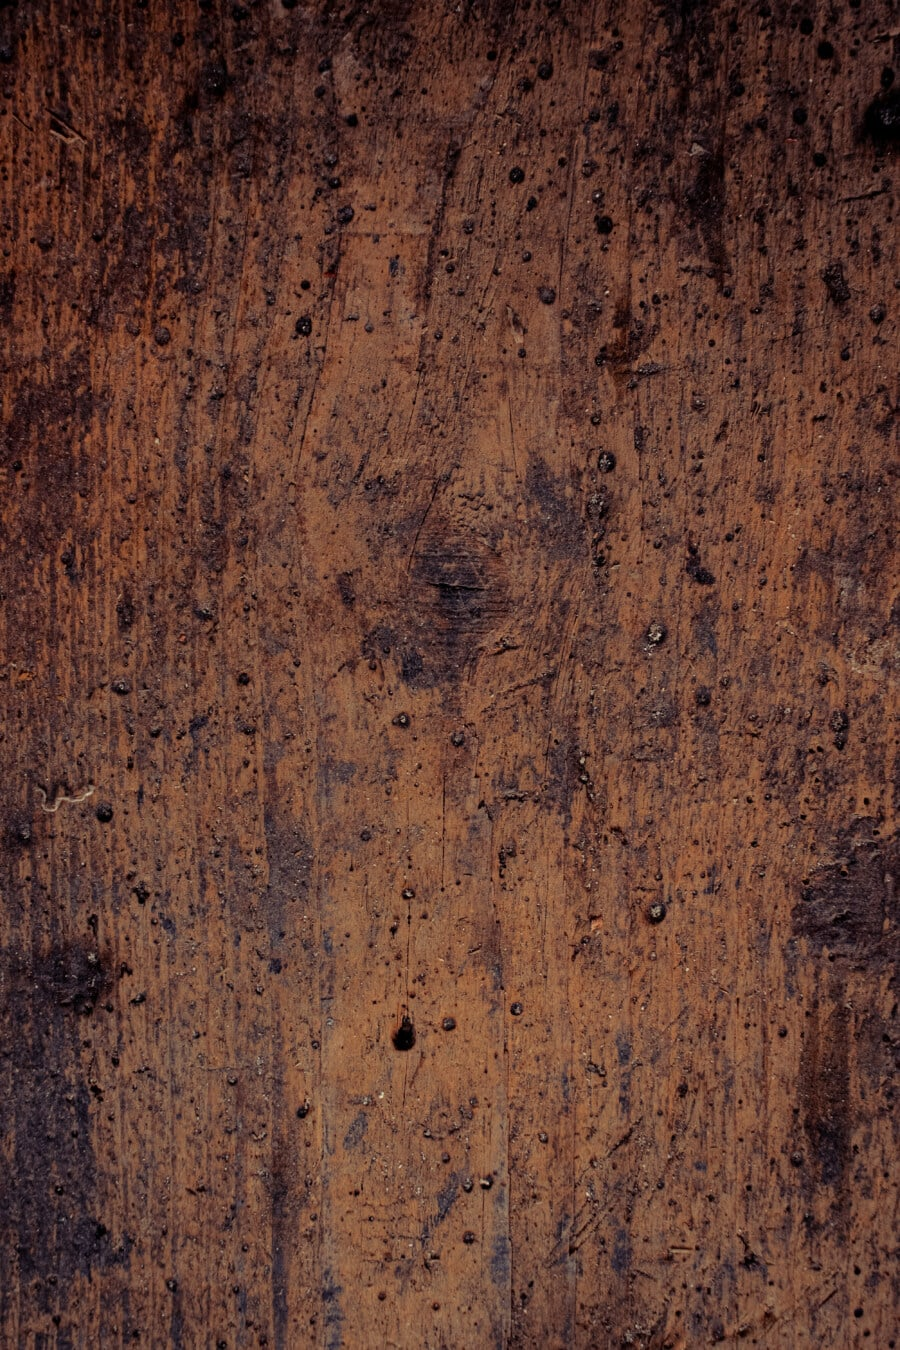 decay, dirty, plank, vertical, texture, wooden, knot, stain, old, dark